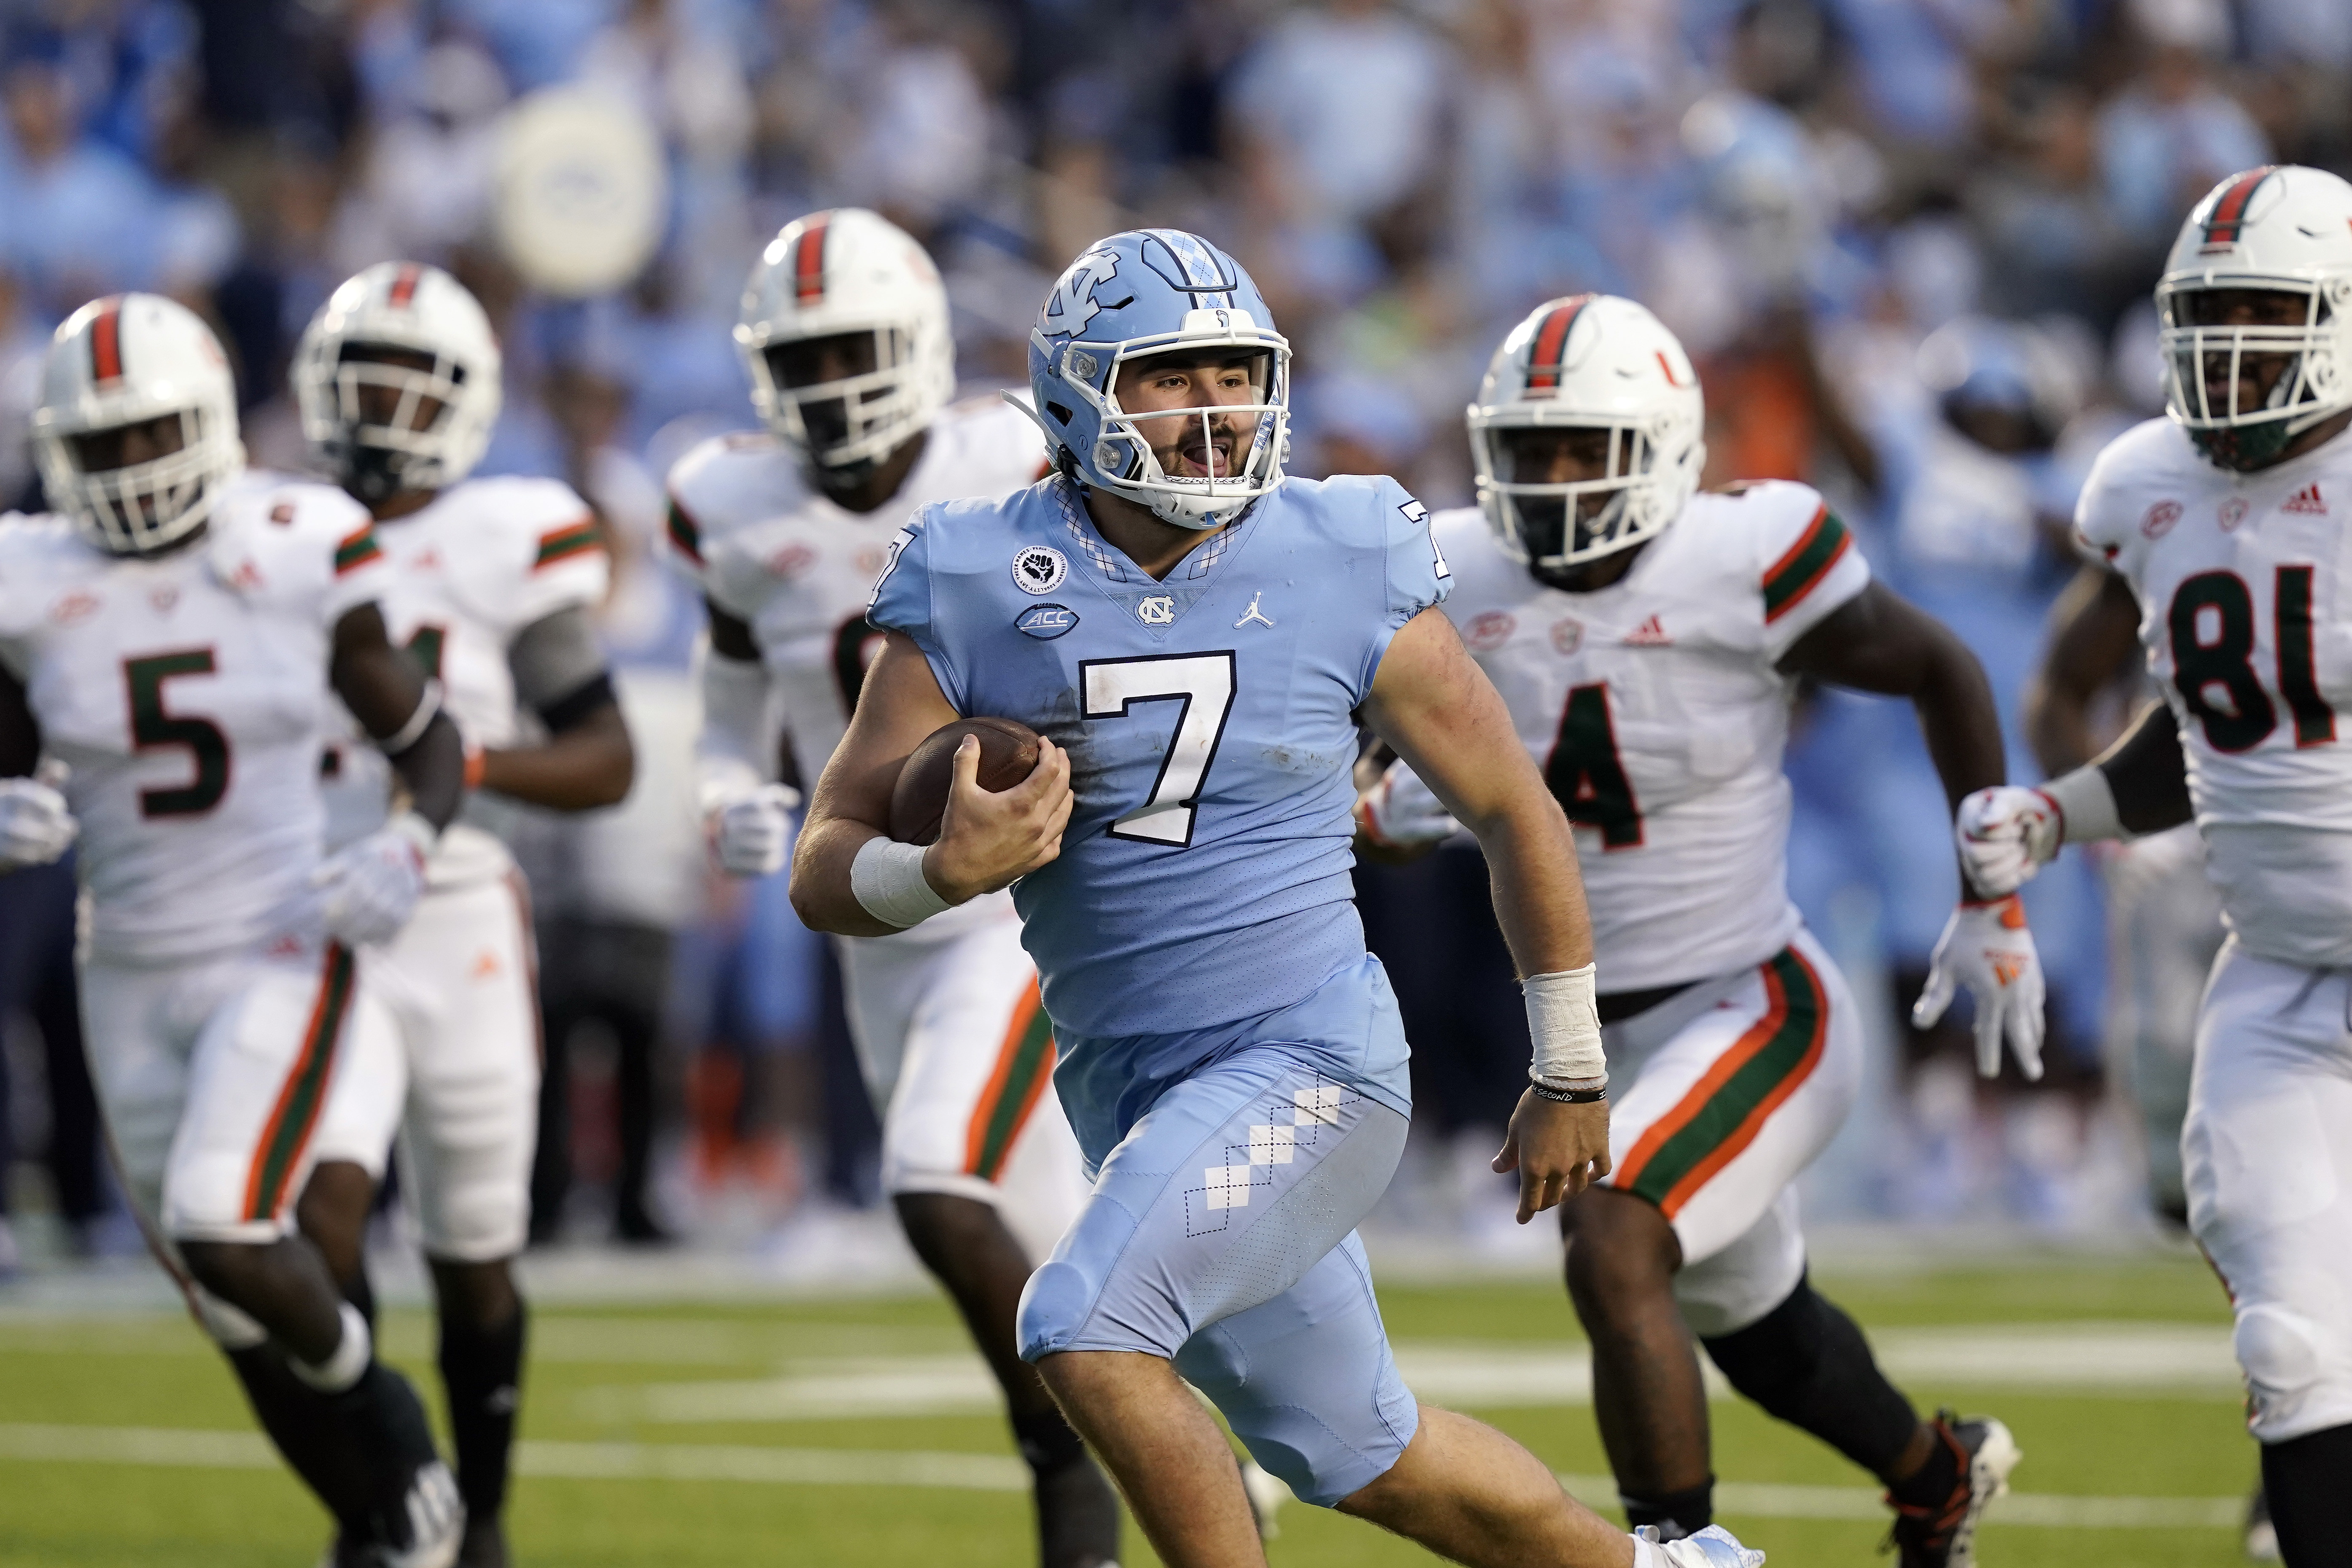 North Carolina quarterback Sam Howell has completed 61.1% of his passes for 1,851 yards and 18 touchdowns.